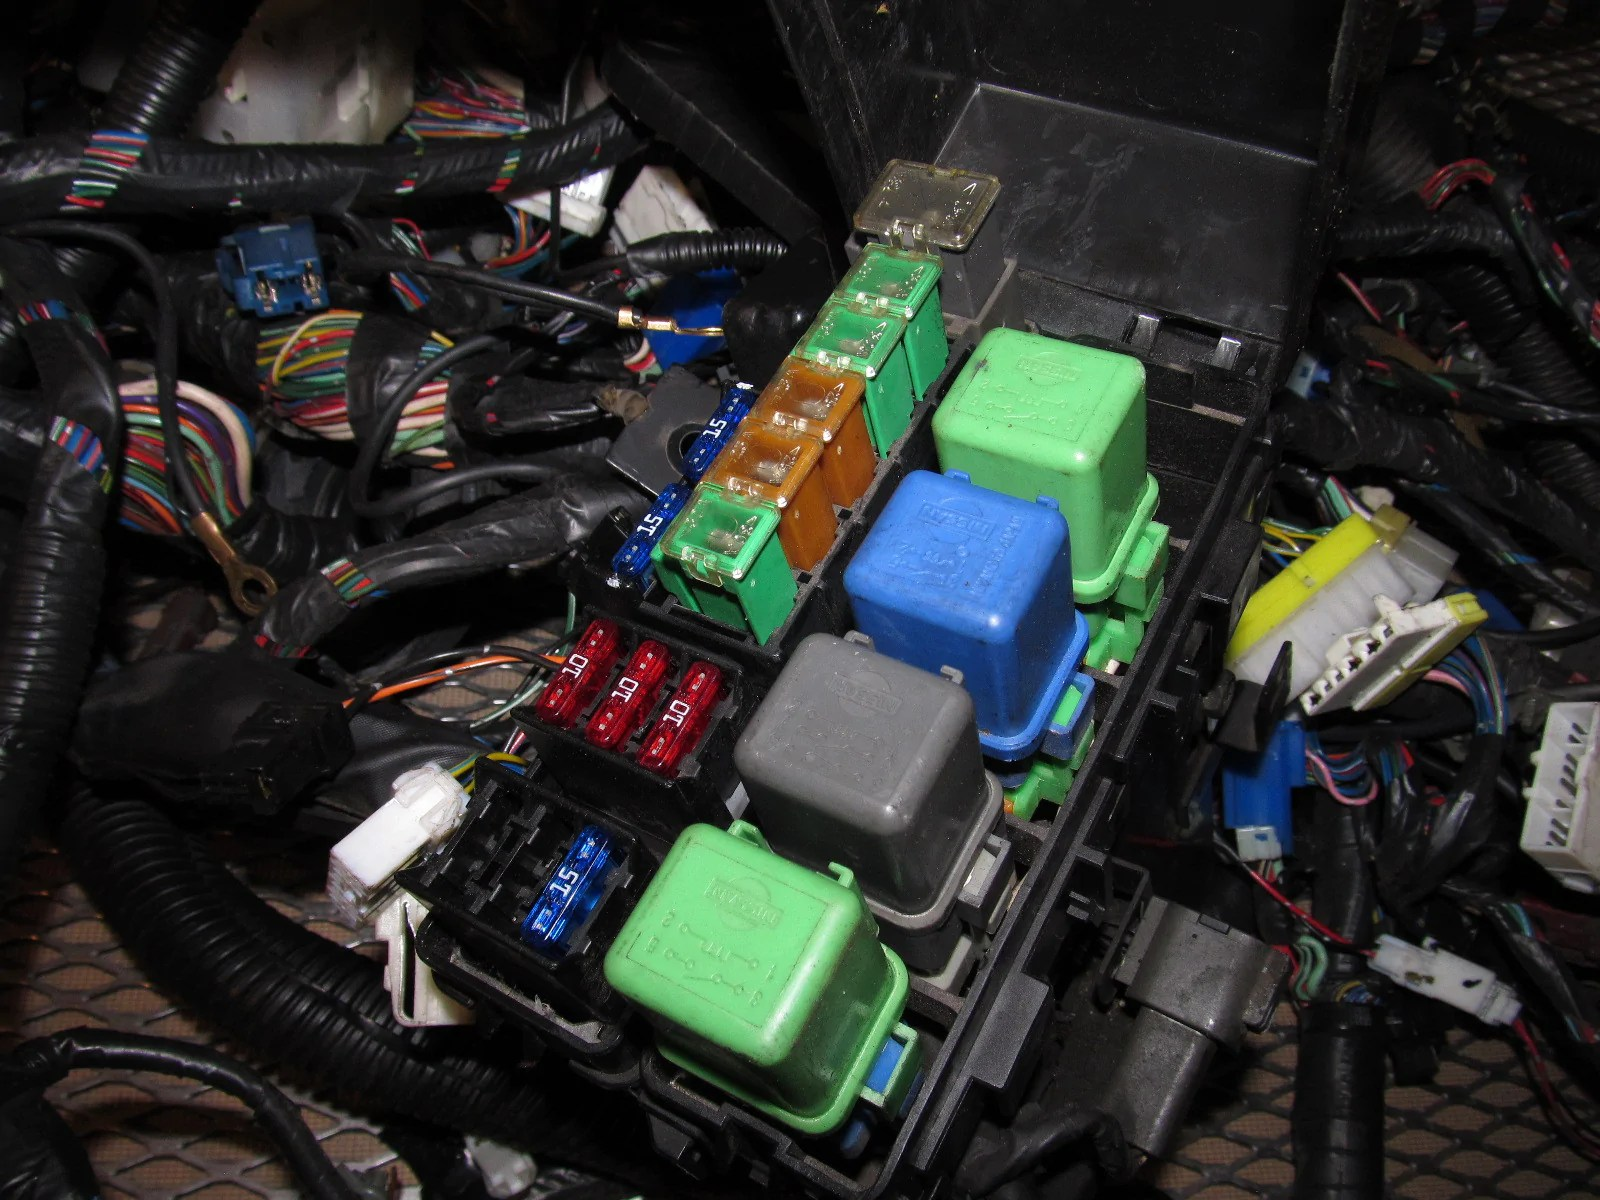 92 corvette fuse box [ 1600 x 1200 Pixel ]